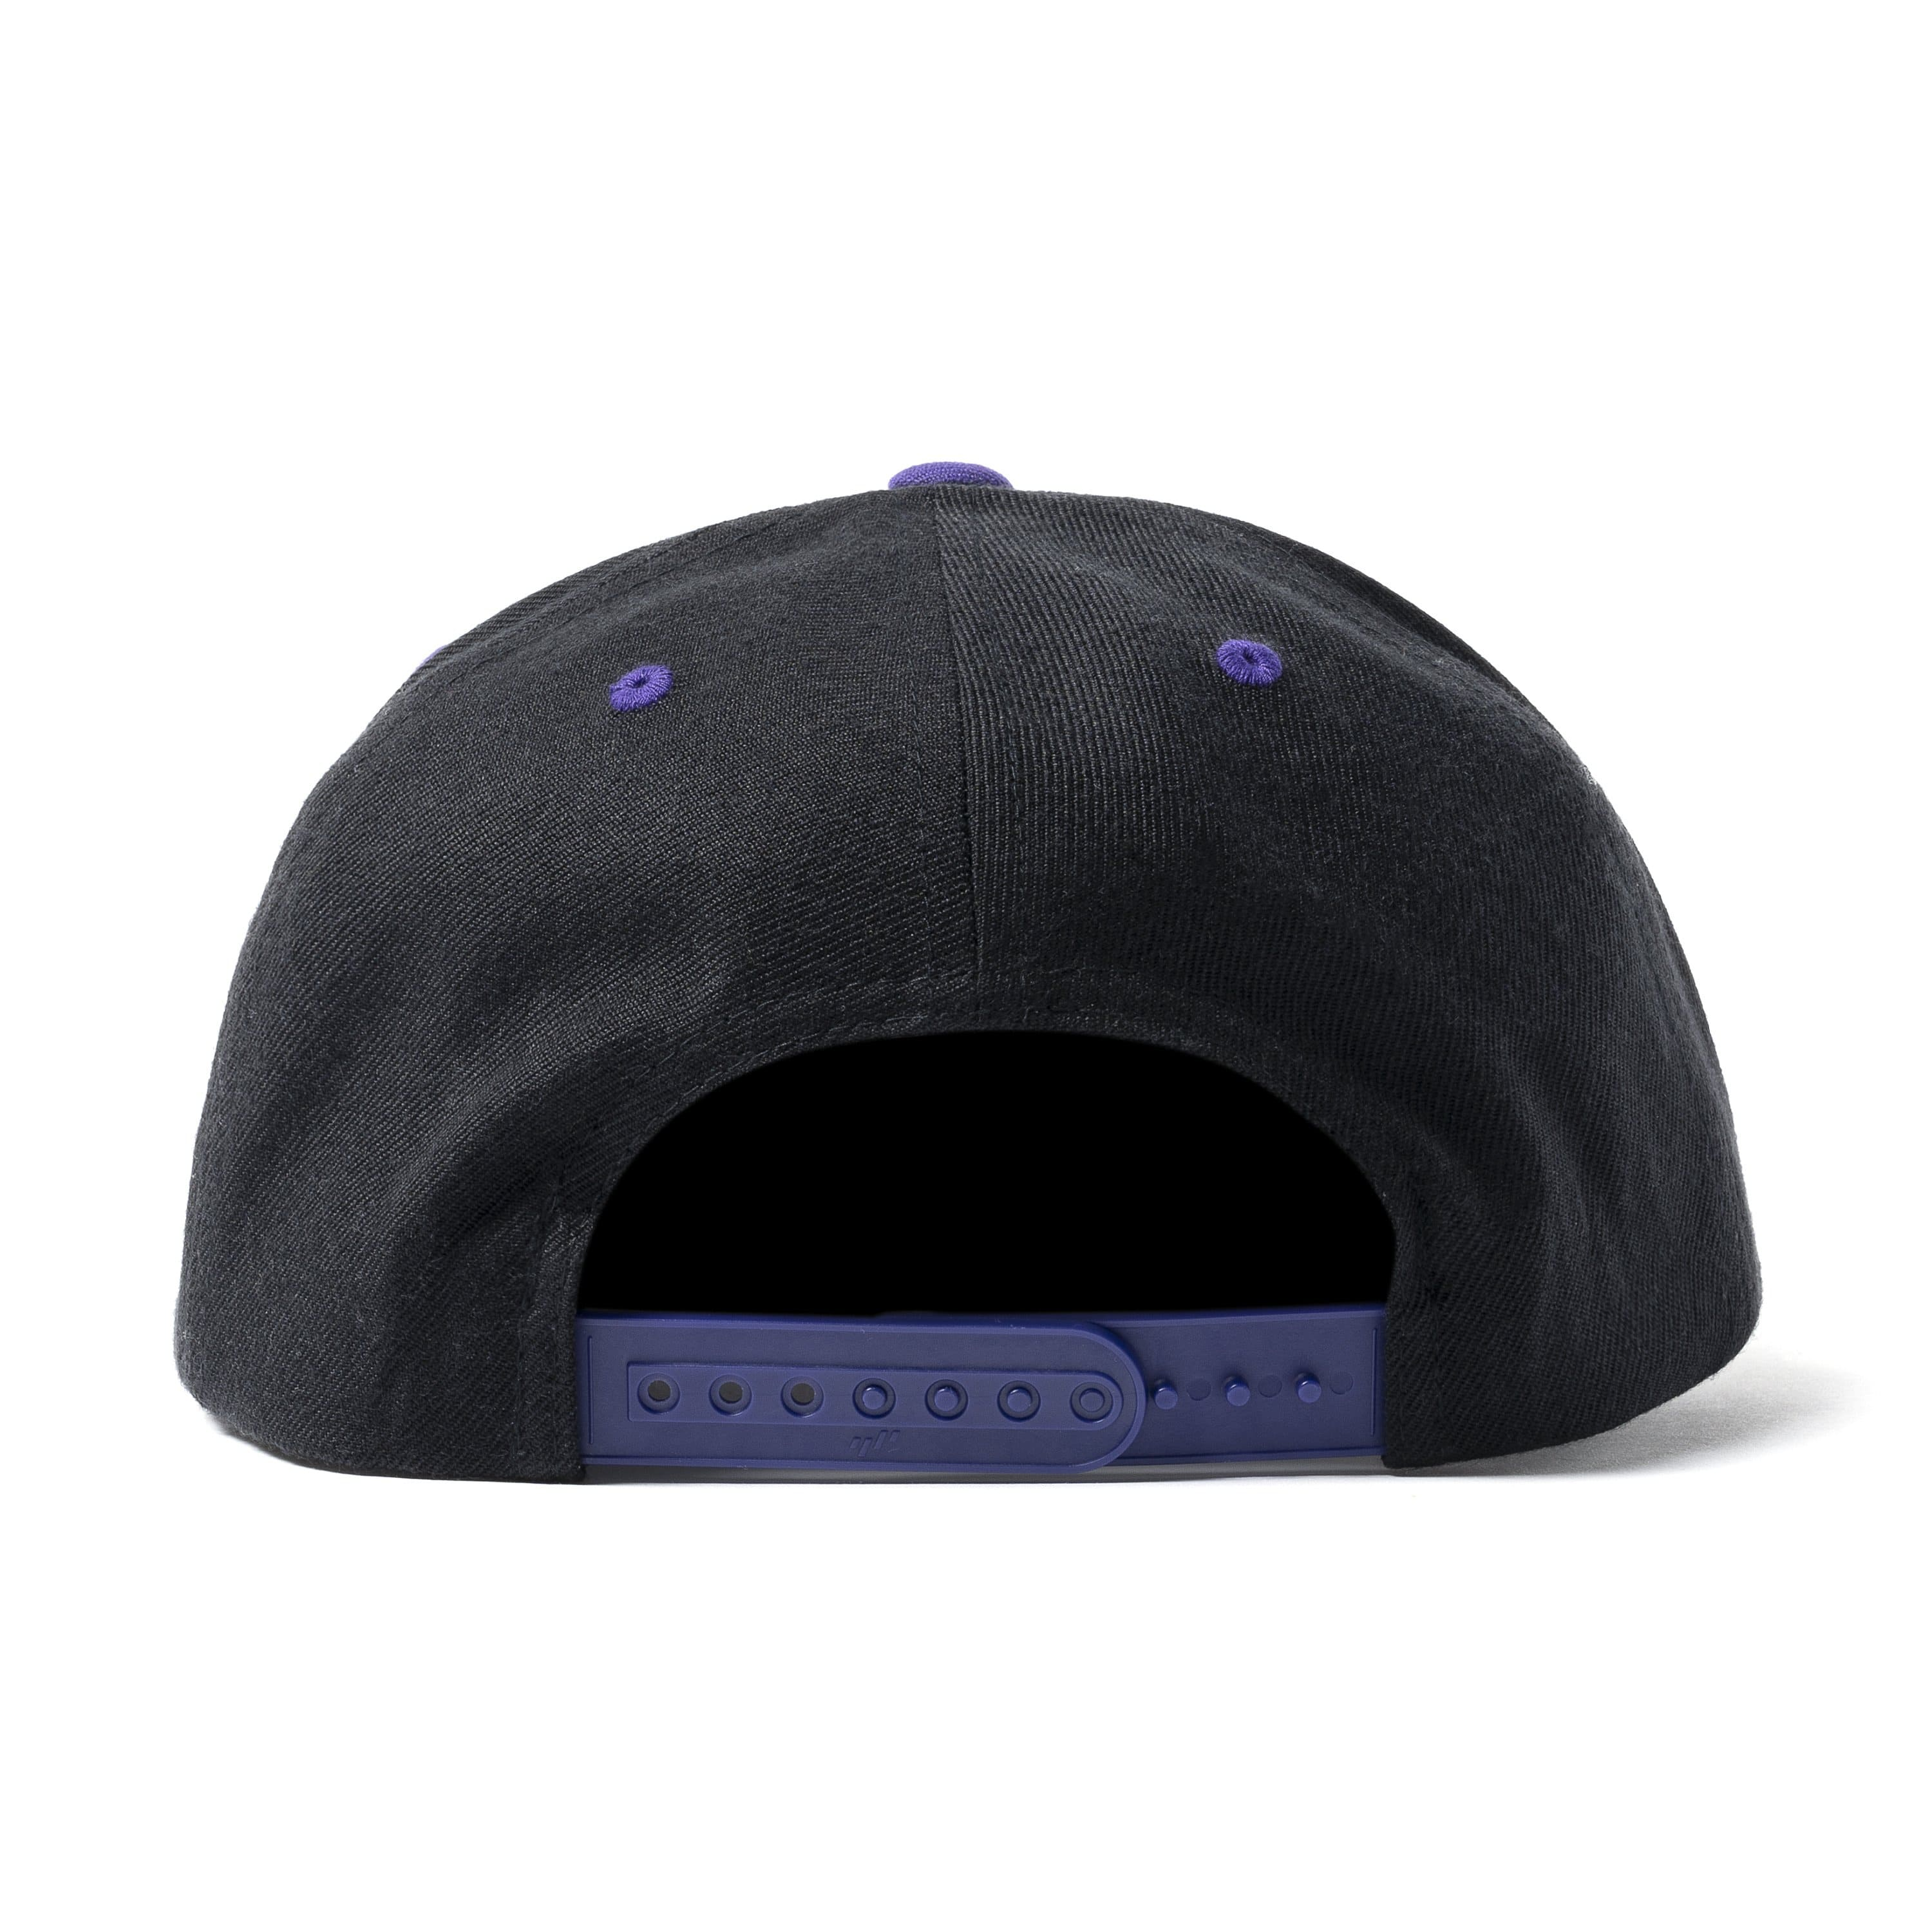 Eyedress Suns Snapback - Eyedress